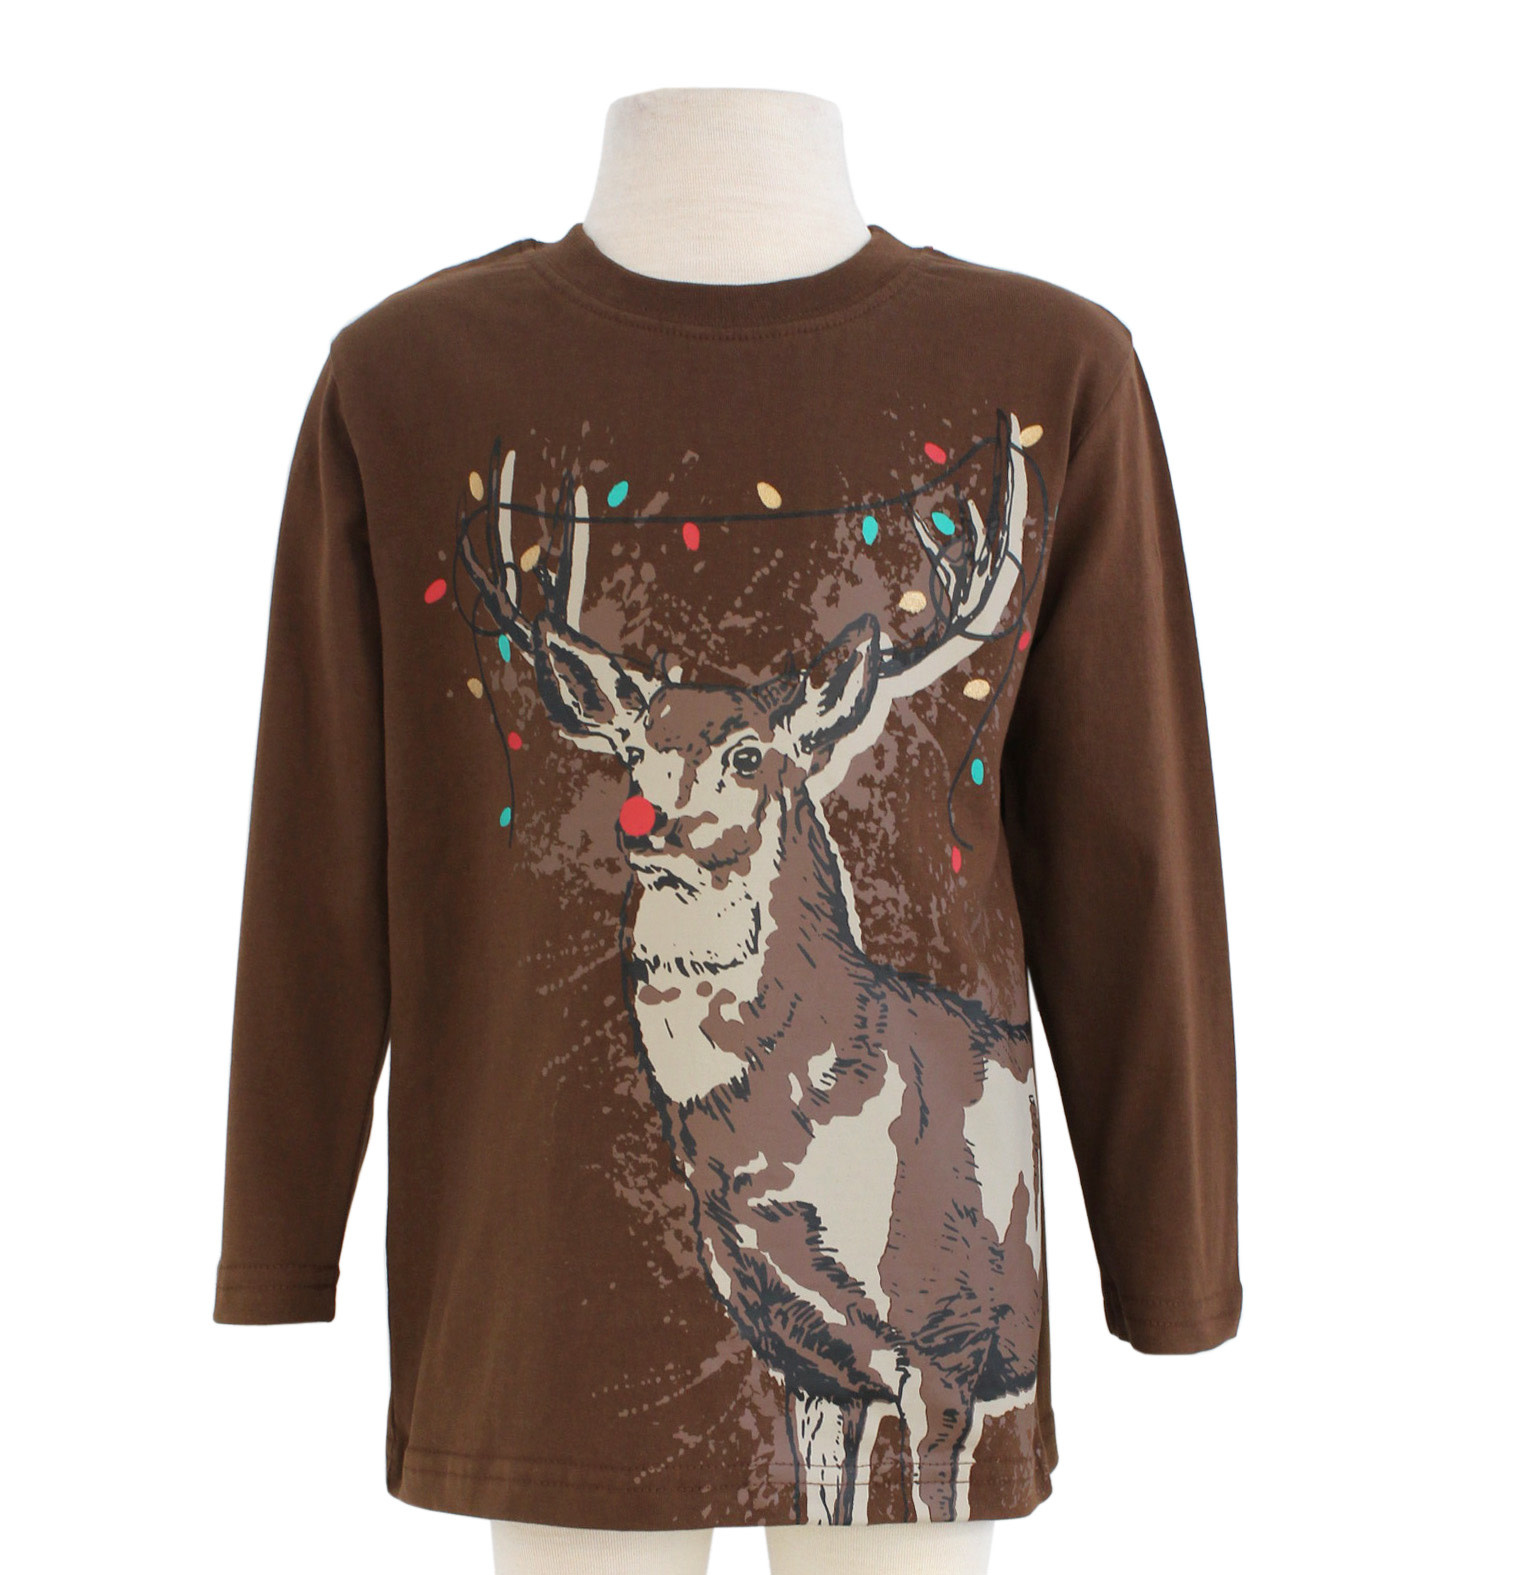 Globaltex Boy's L/S Christmas Tops